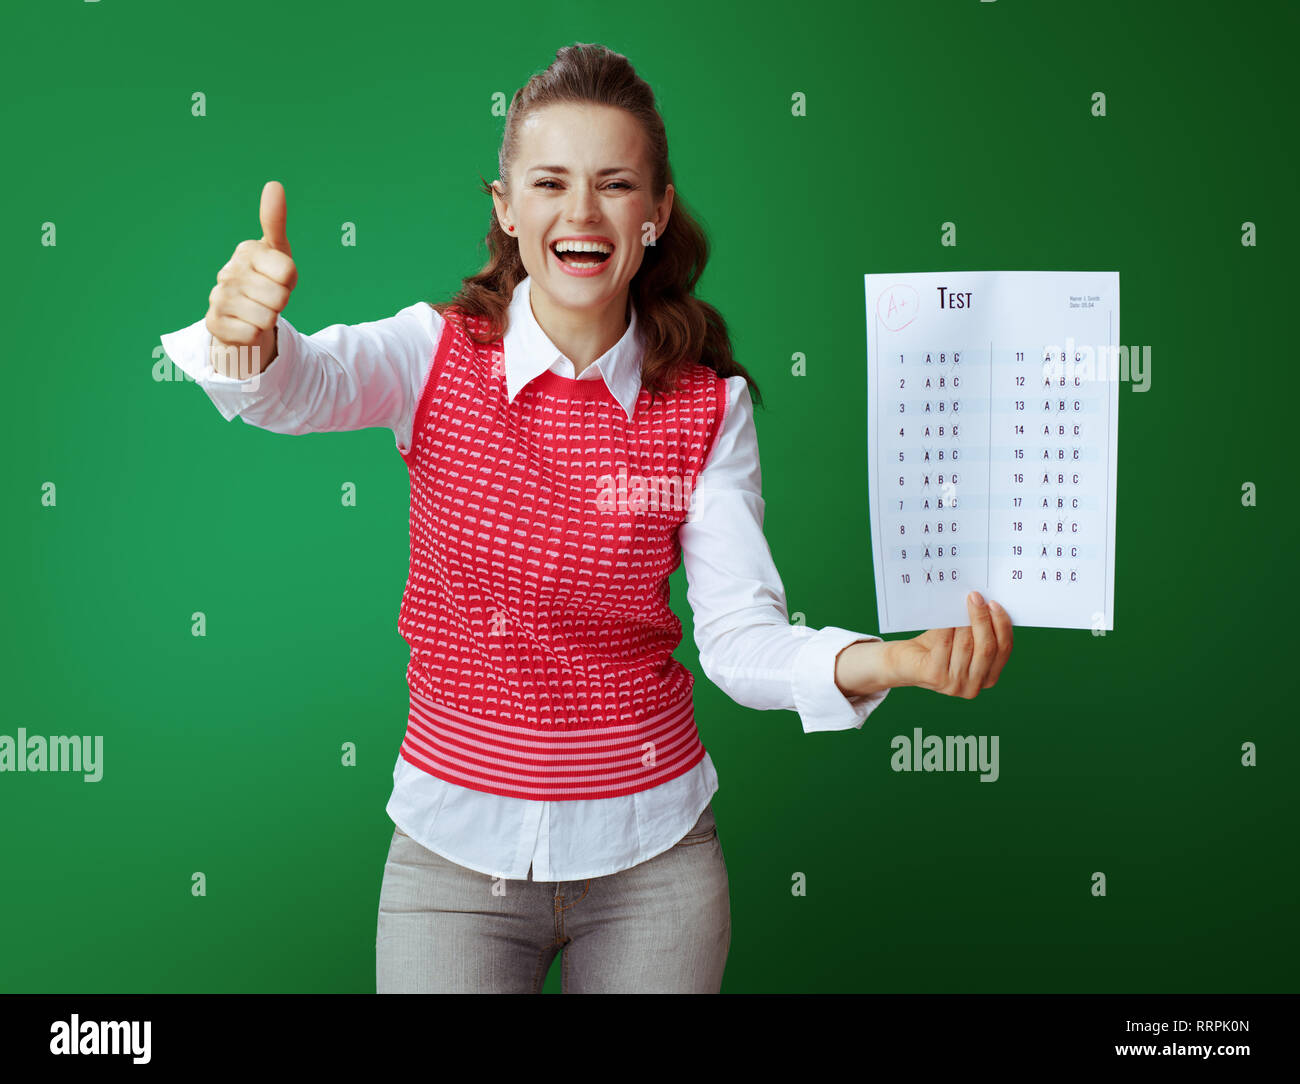 smiling young student in grey jeans and pink sleeveless shirt showing A+ exam result against green background. - Stock Image